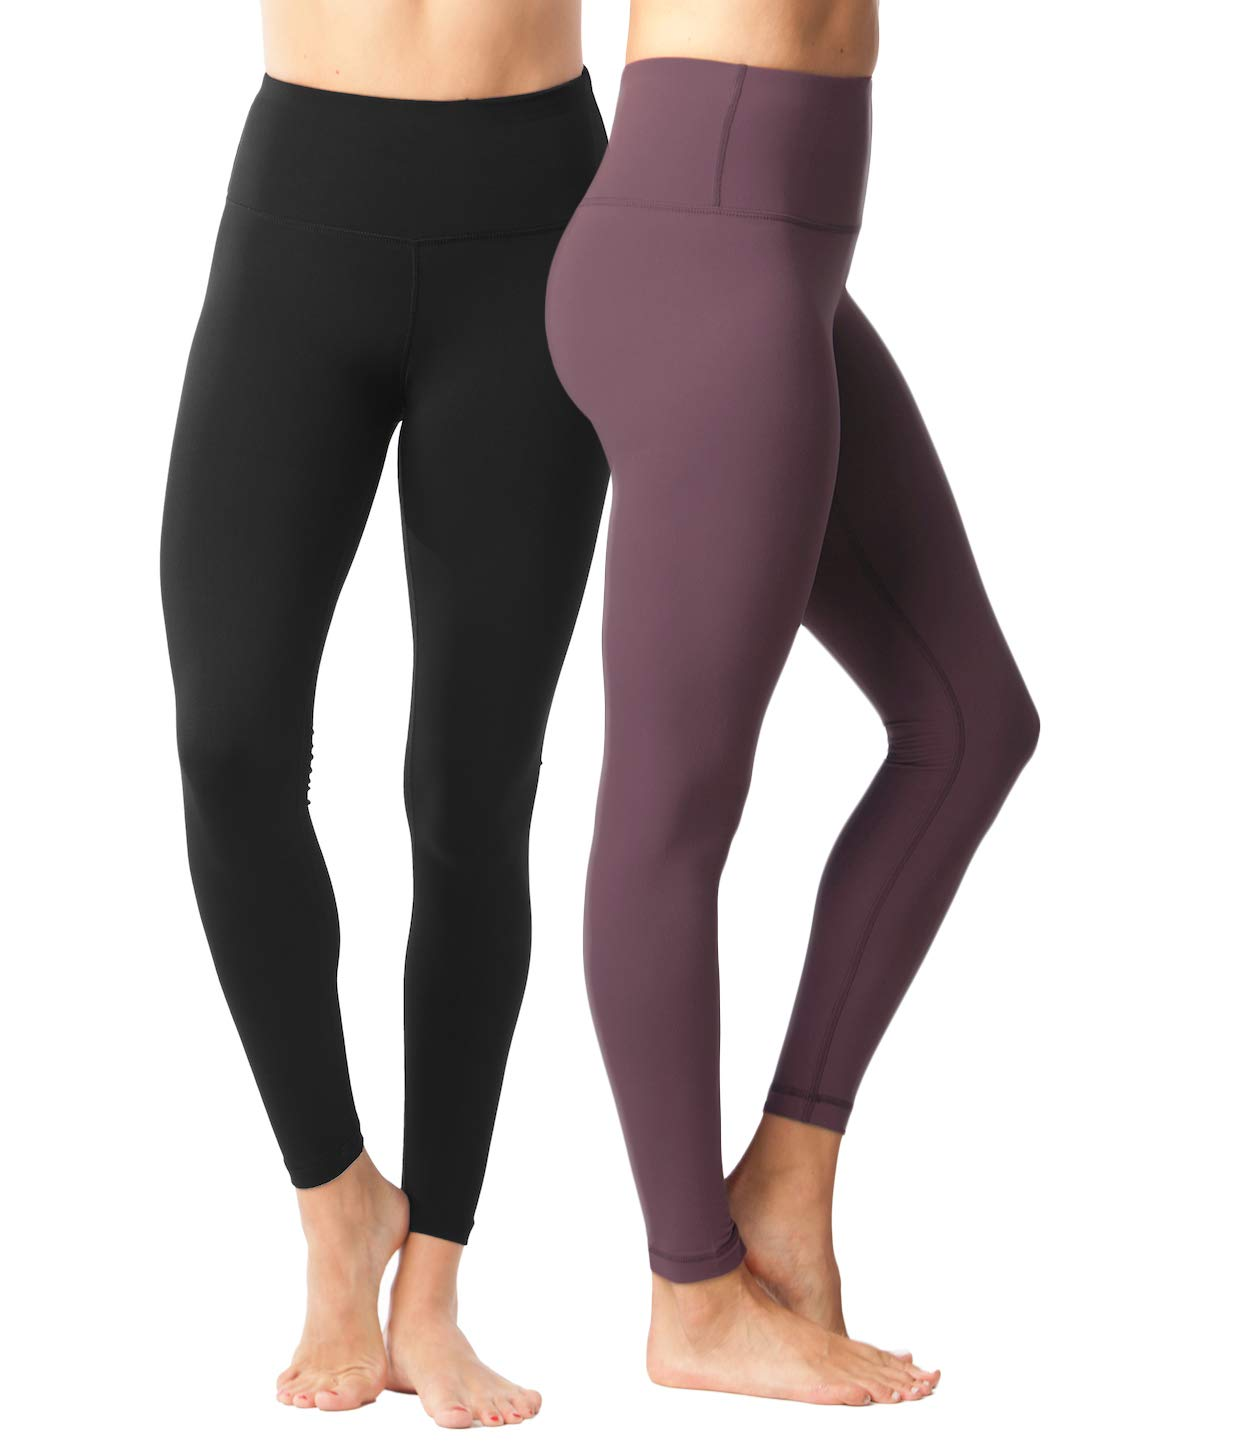 Yogalicious High Waist Ultra Soft Lightweight Leggings - High Rise Yoga Pants - 2 Pack - Black and Dusky Orchid - XS